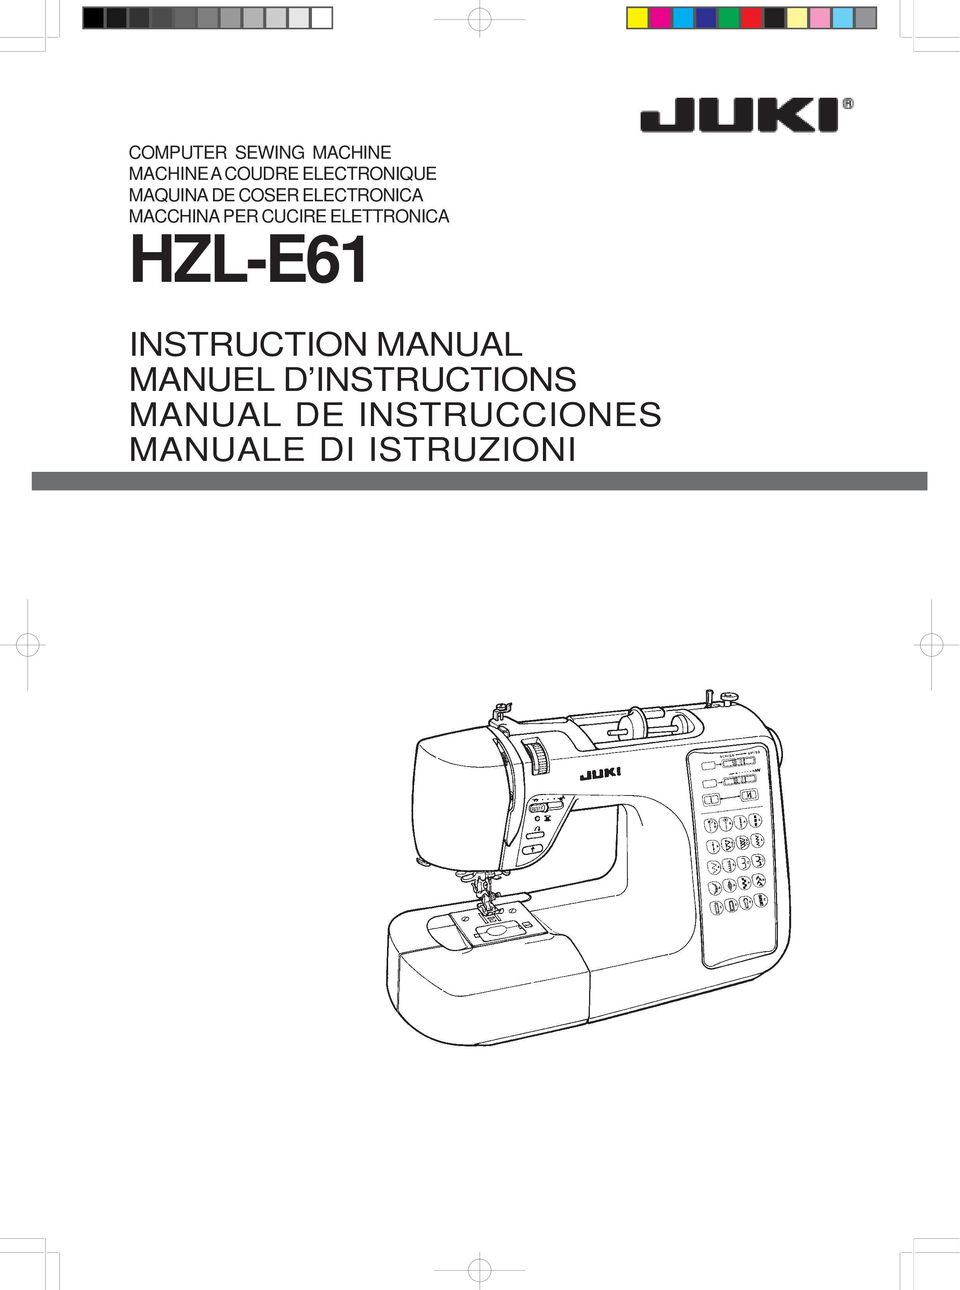 PER CUCIRE ELETTRONICA HZL-E61 INSTRUCTION MANUAL